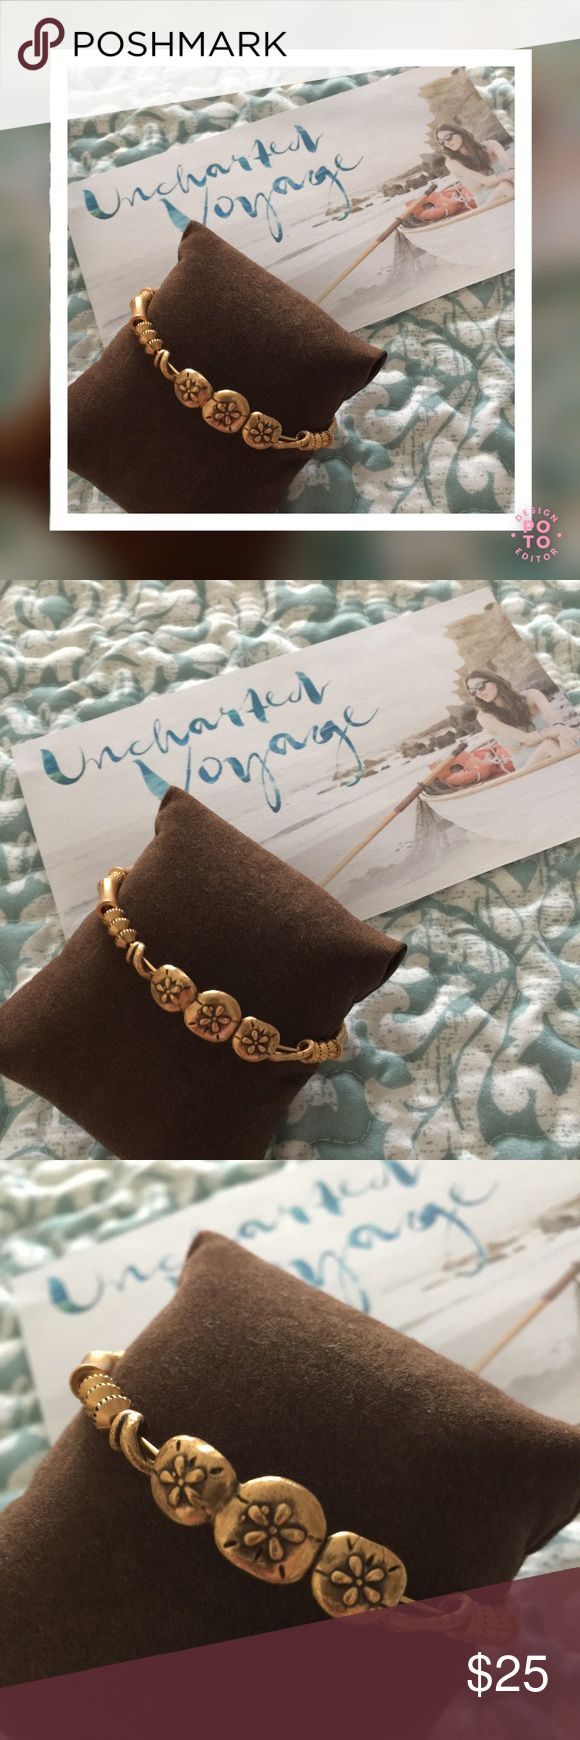 """ALEX AND ANI Sand Dollar Horizontal Expand Bangle EUC!!! A&A Retired Piece! Meaning: BLESSING - LEGEND - TREASURE. Part of the Uncharted Voyage Collection. Crafted in Rafaelian Gold Finish;Expandable from 2"""" to 3.5"""" in diameter. Beautiful for any beach lover! Firm Price. Alex & Ani Jewelry Bracelets"""